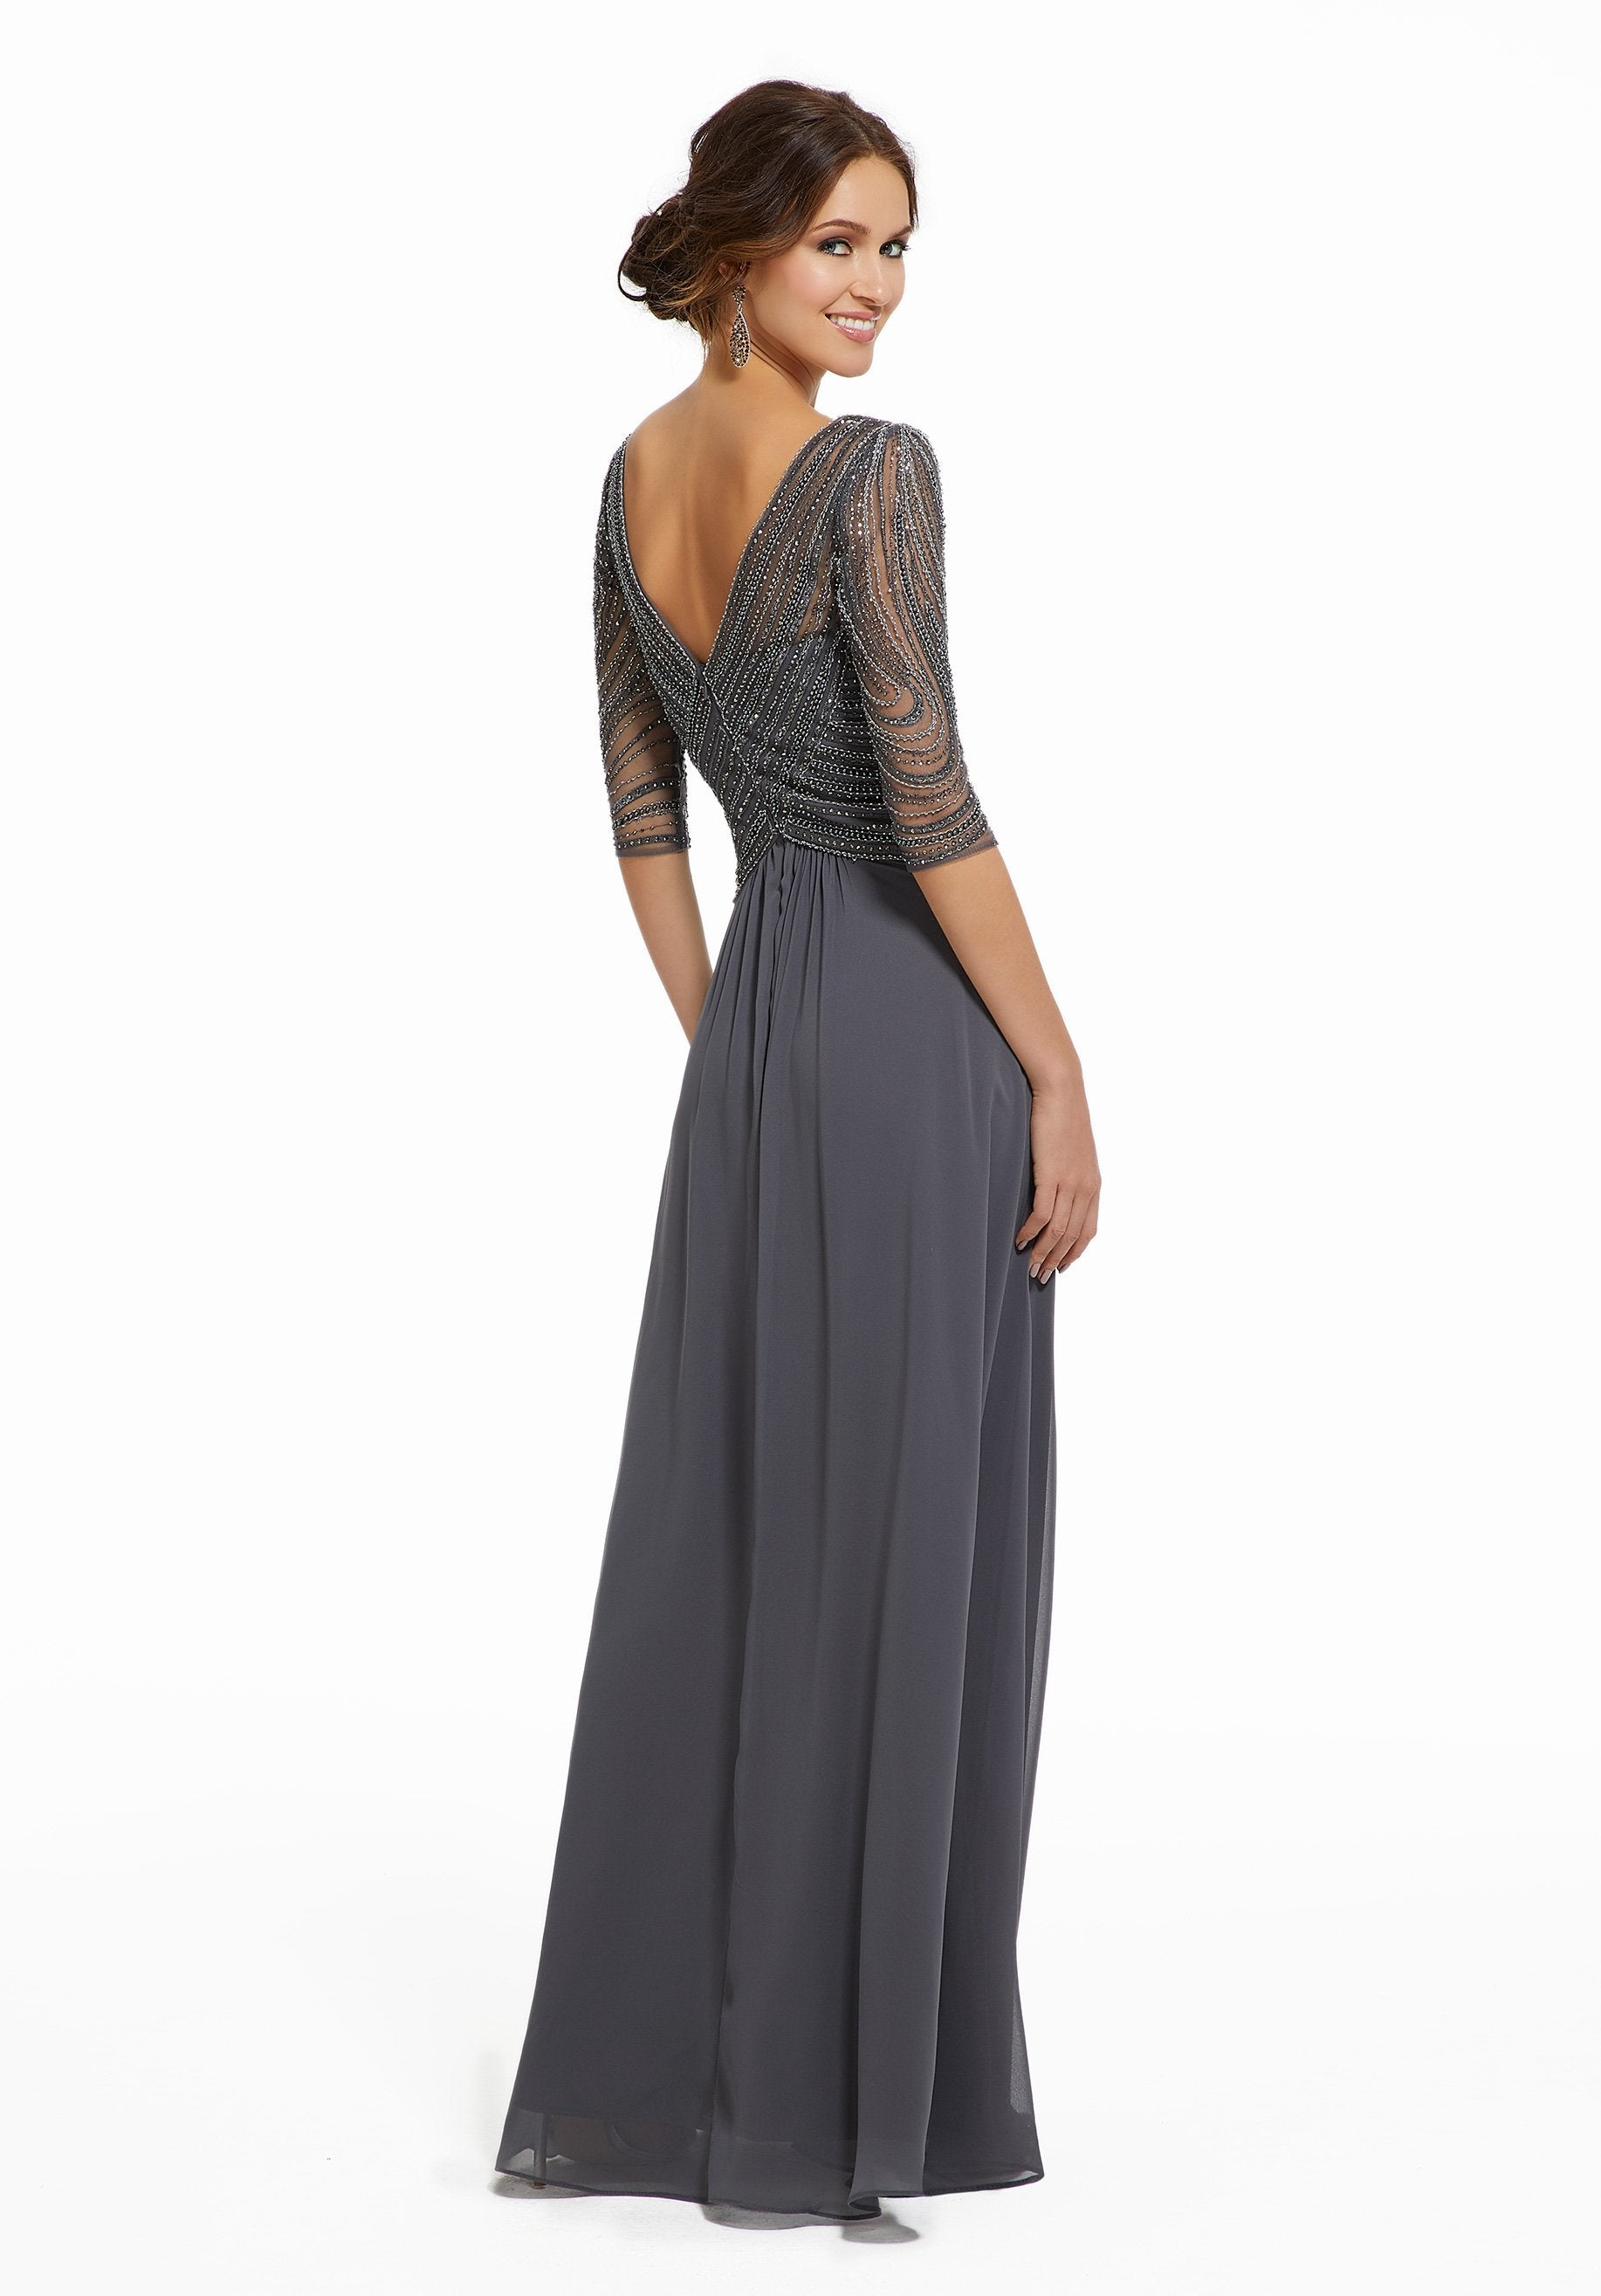 MGNY By Mori Lee - Beaded V-Neck A-Line Long Gown 72028 In Gray